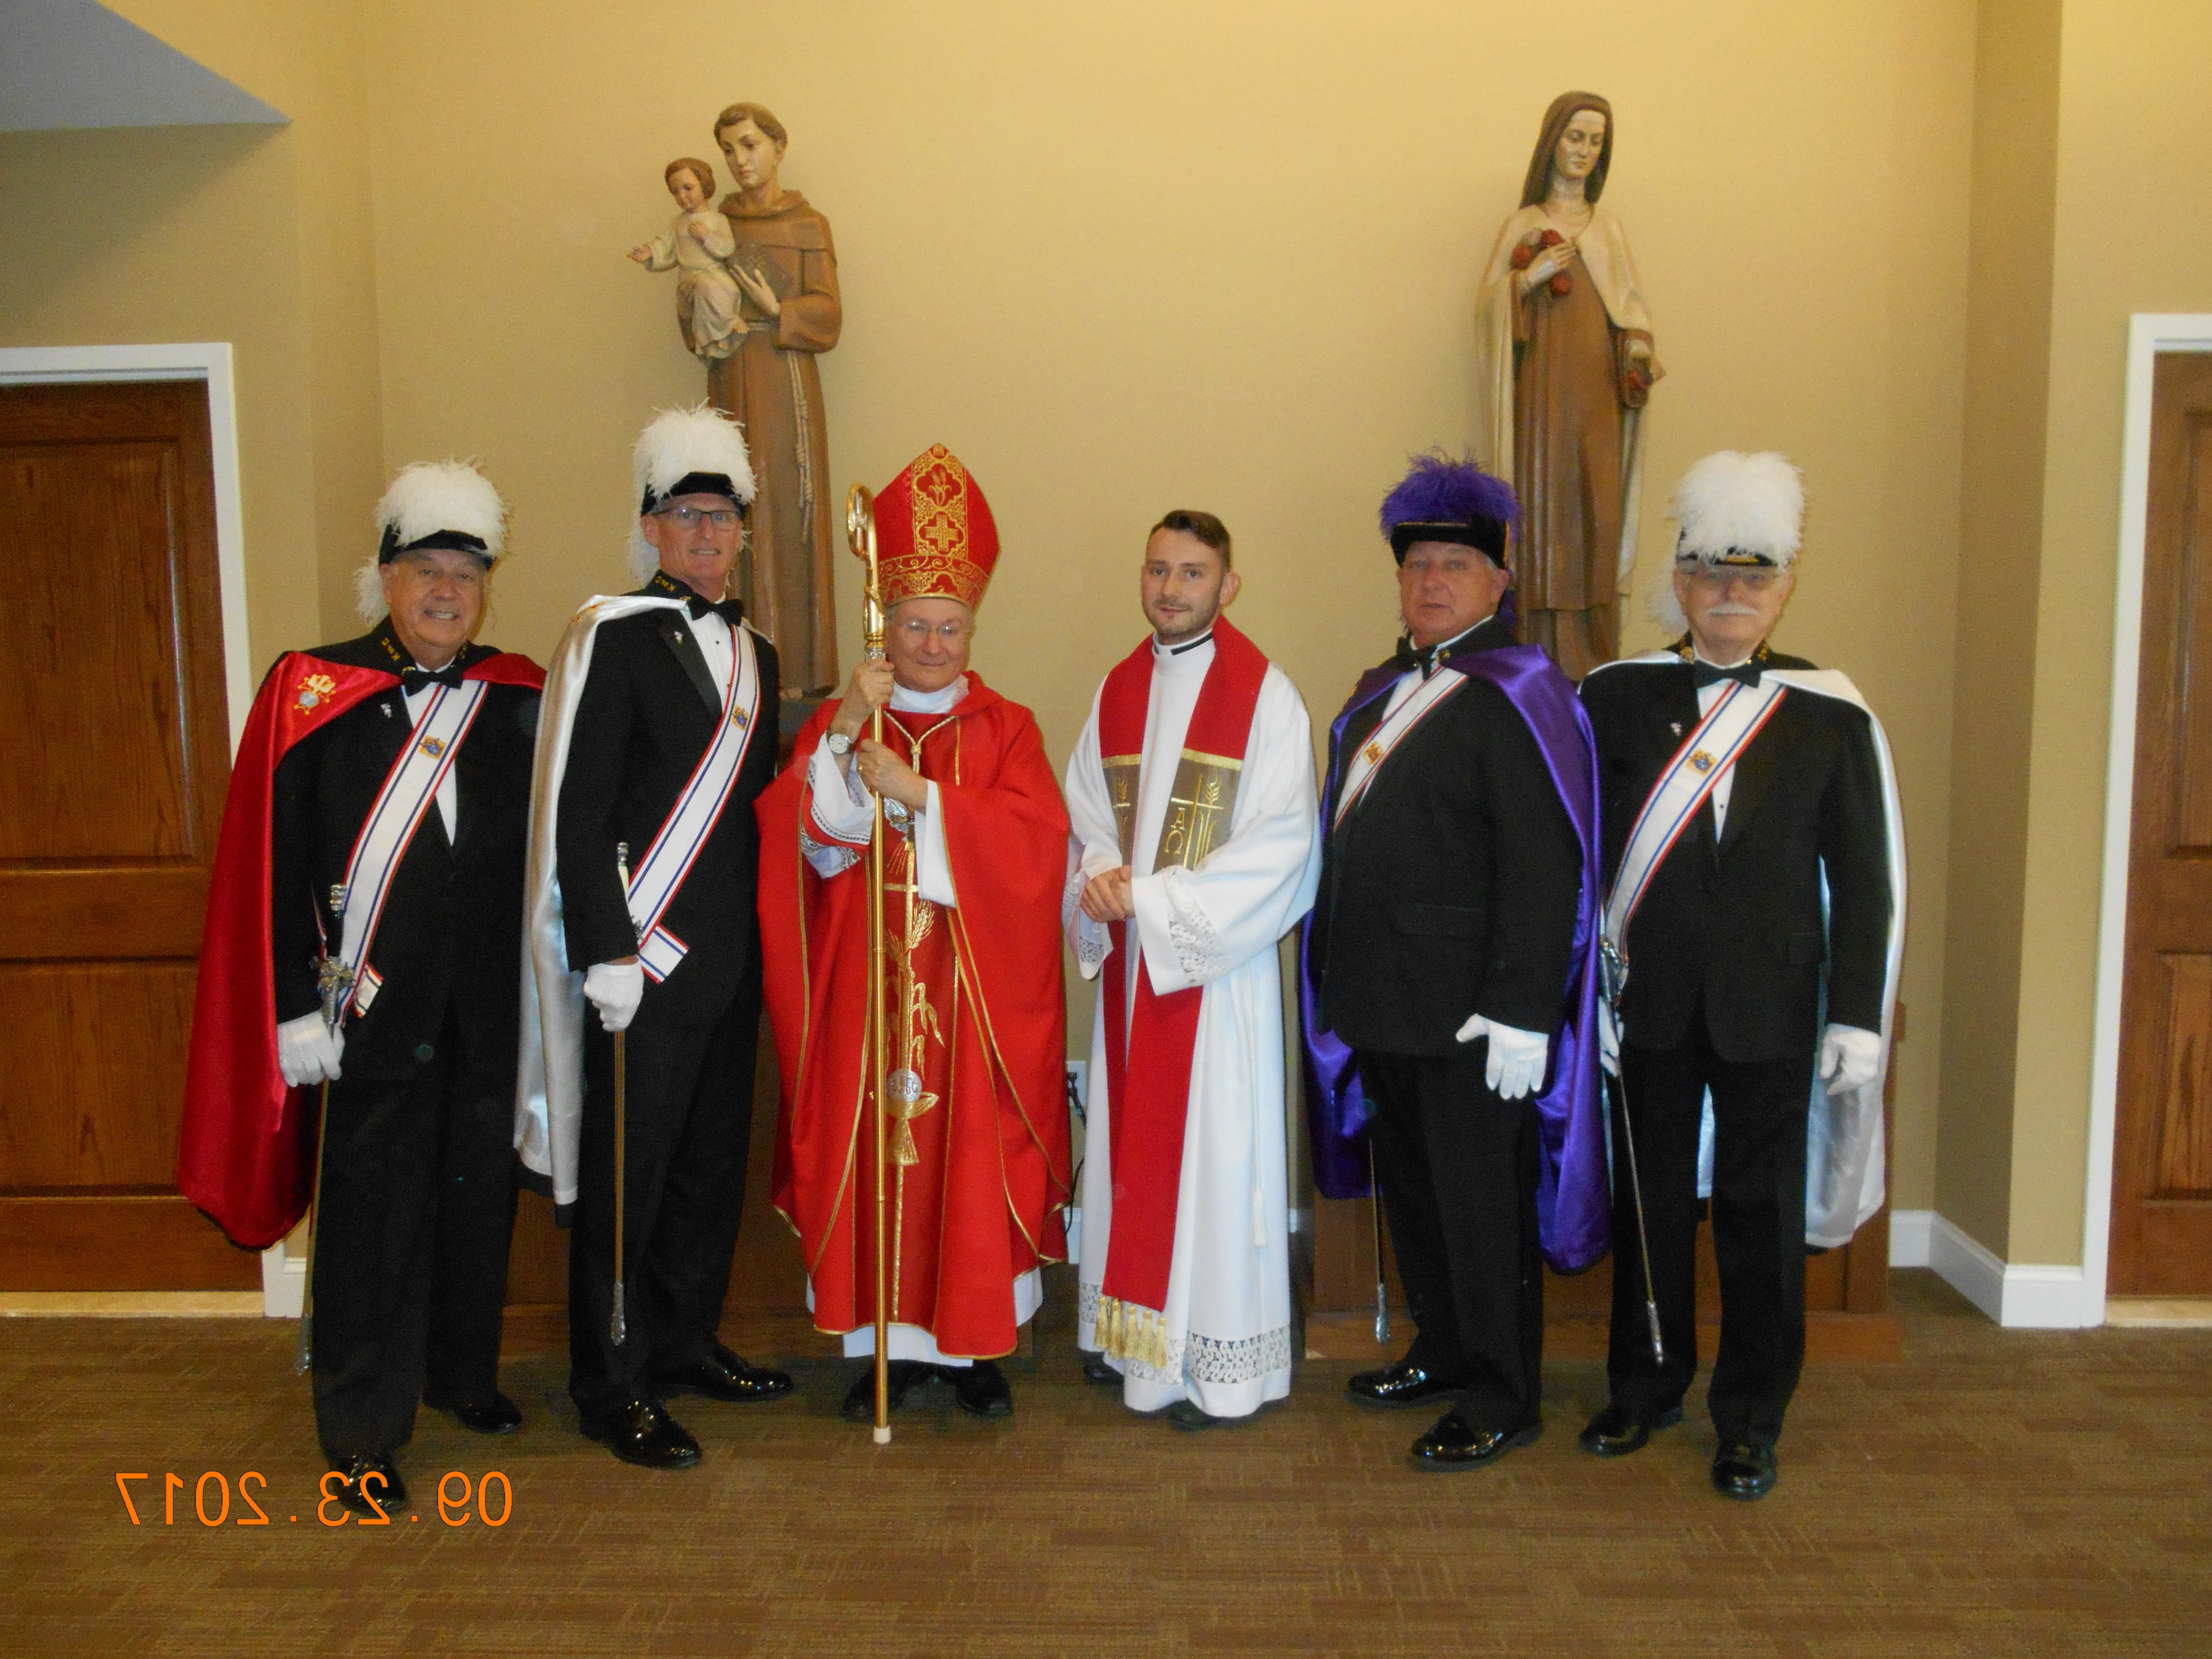 Knights of Columbus Ceremony